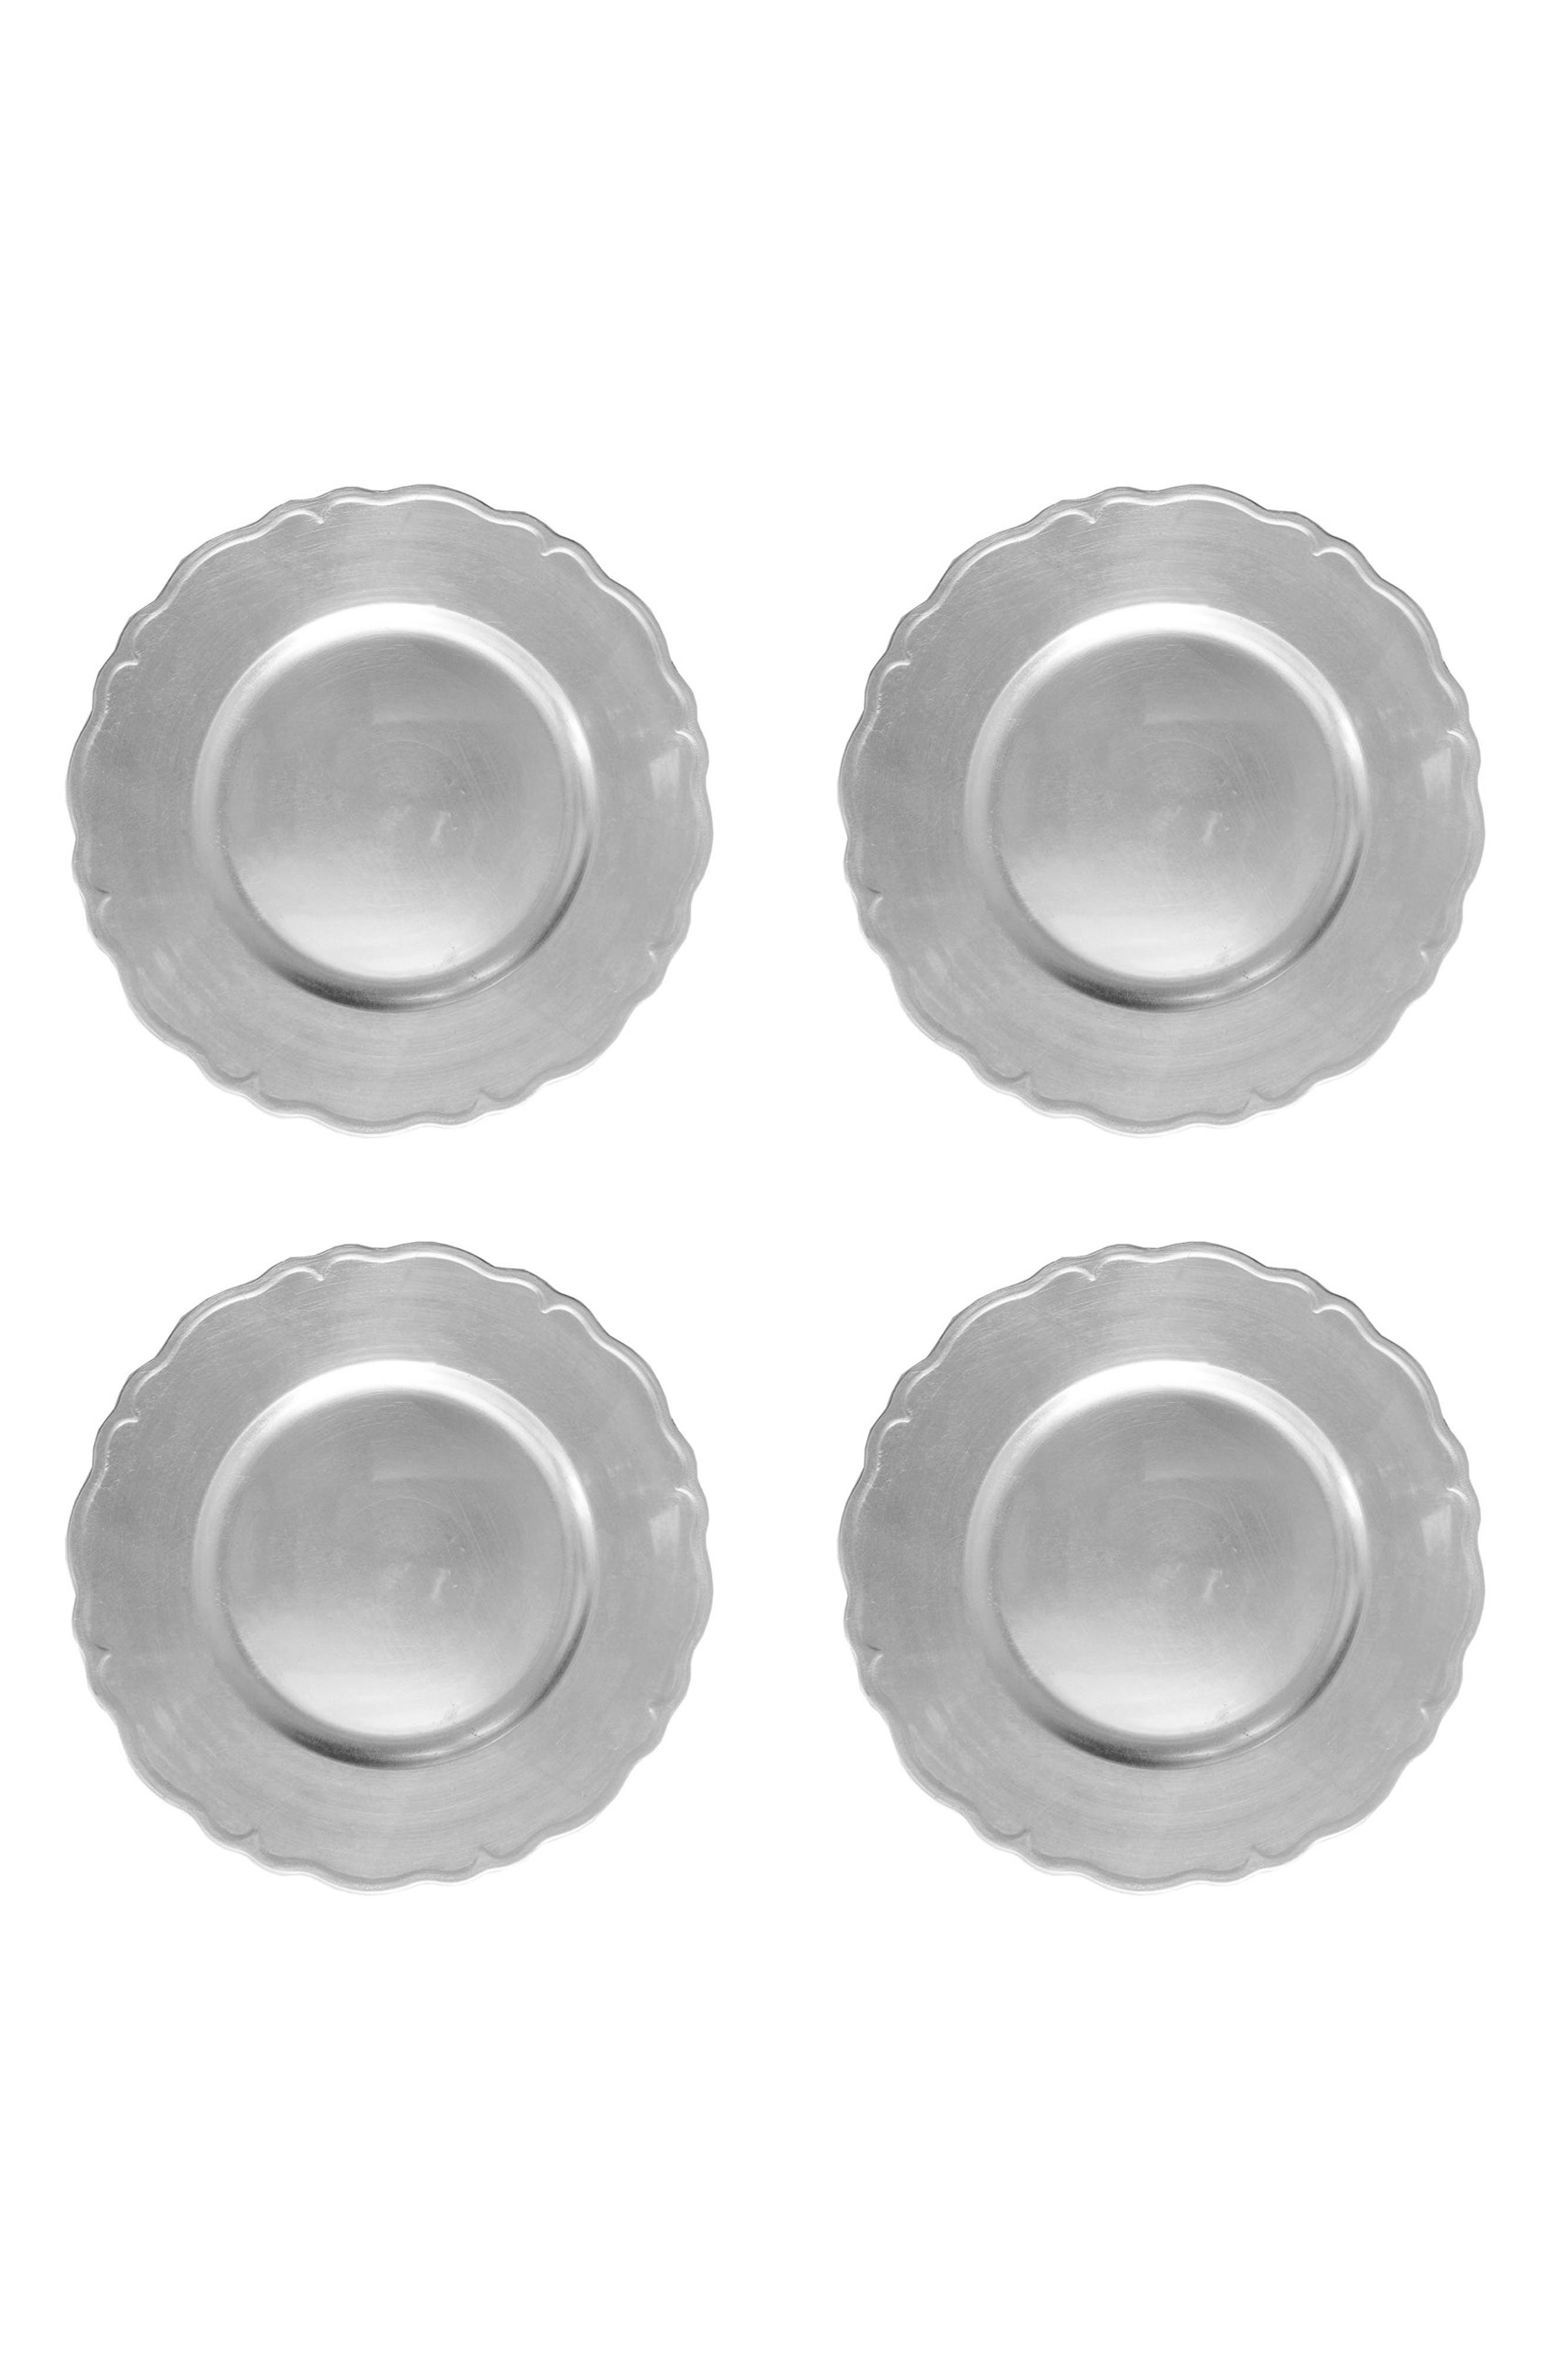 American Atelier Regency Set of 4 Charger Plates